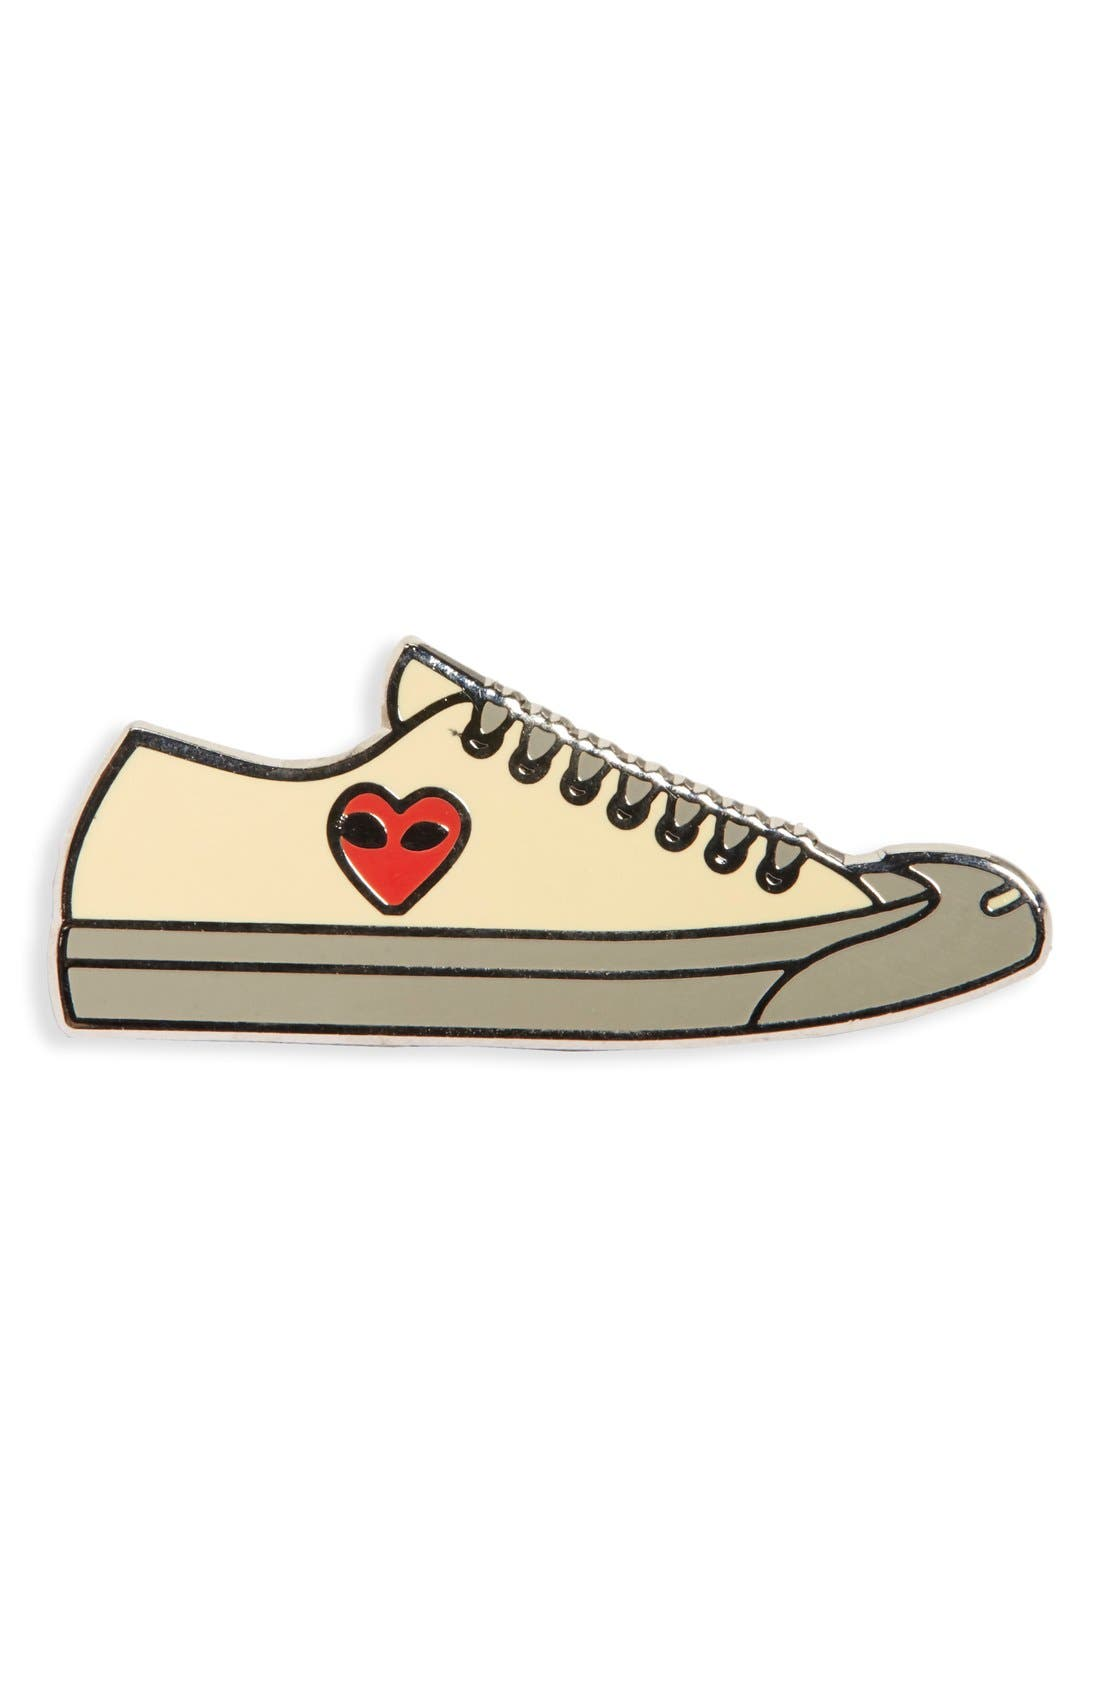 Alternate Image 1 Selected - PINTRILL 'Low Top Sneaker' Fashion Accessory Pin